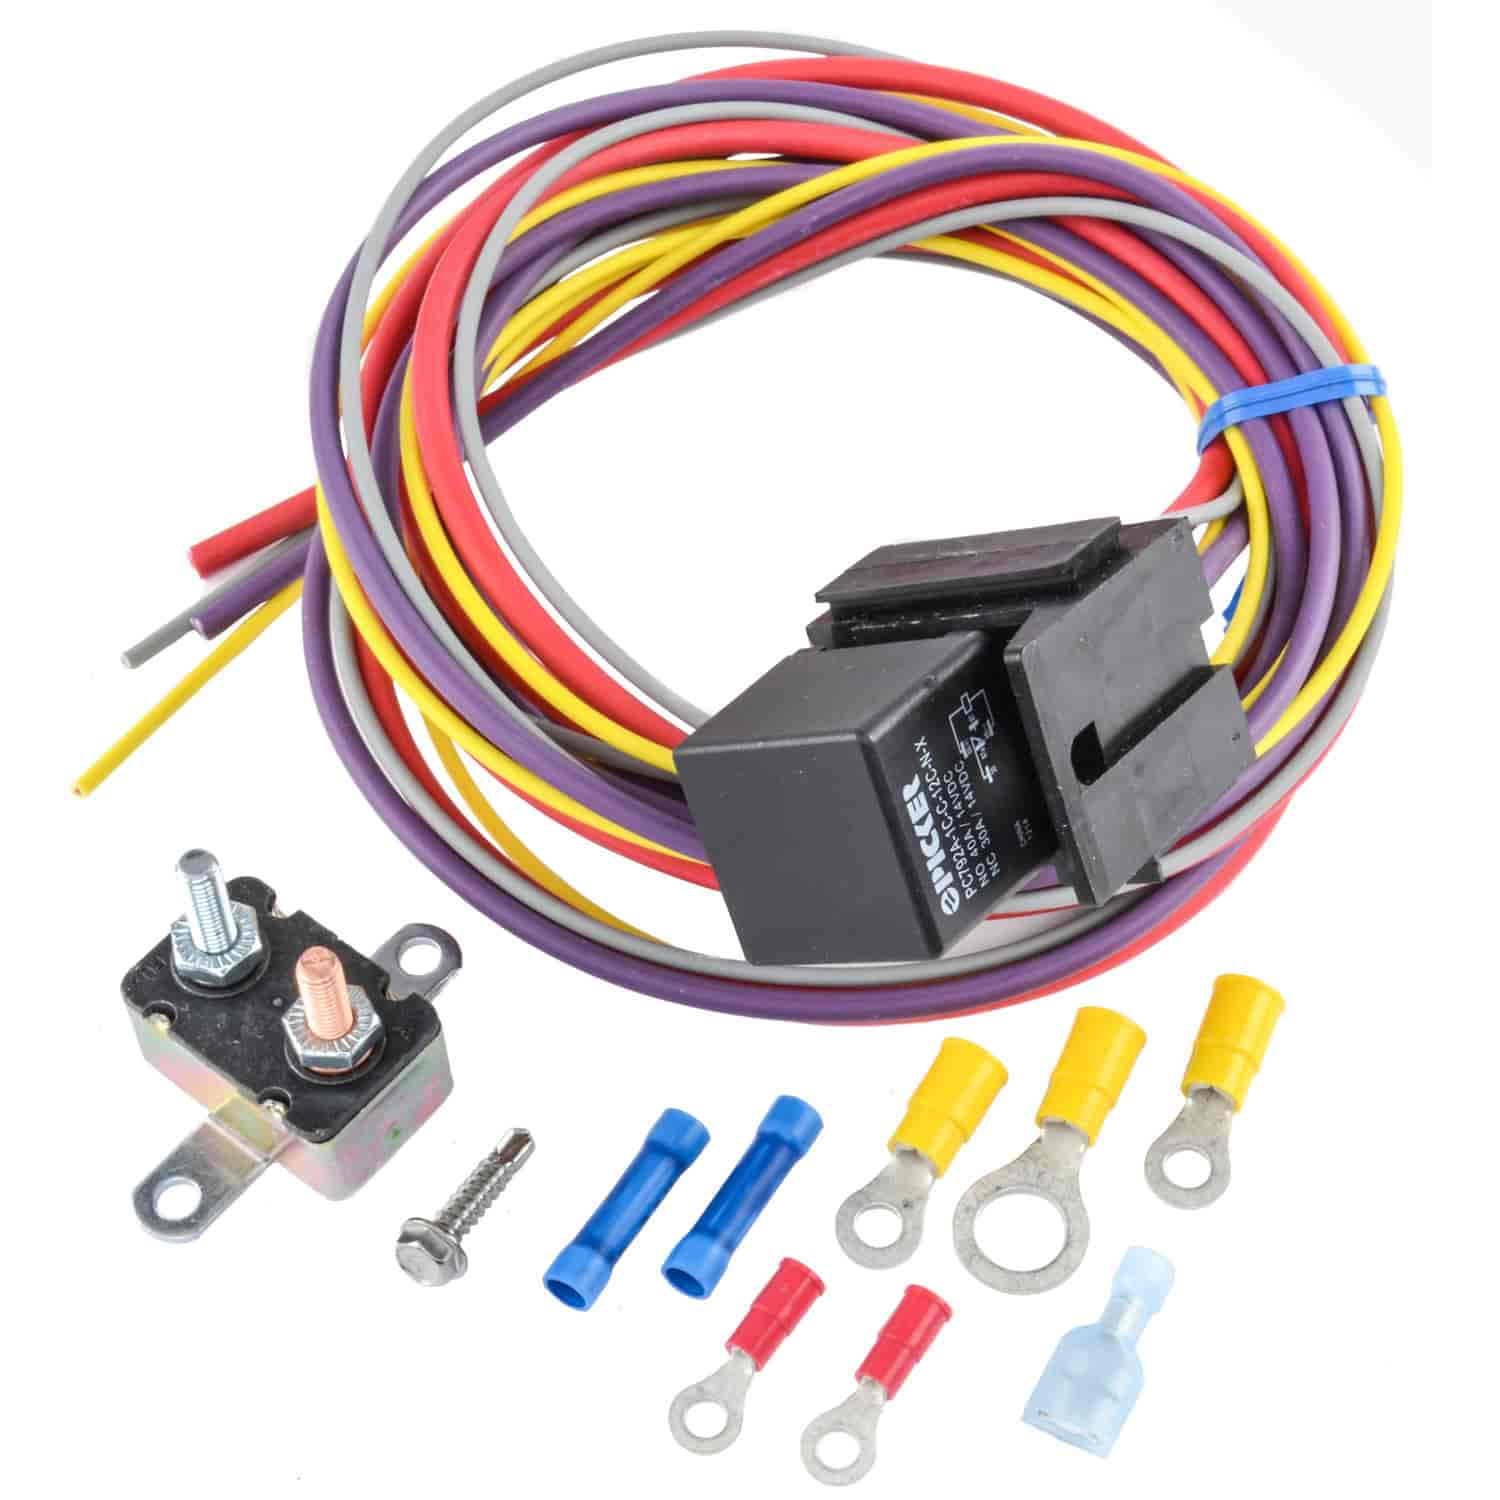 555 10559 jegs performance products 10559 manual controlled single fan jegs universal wiring harness at webbmarketing.co